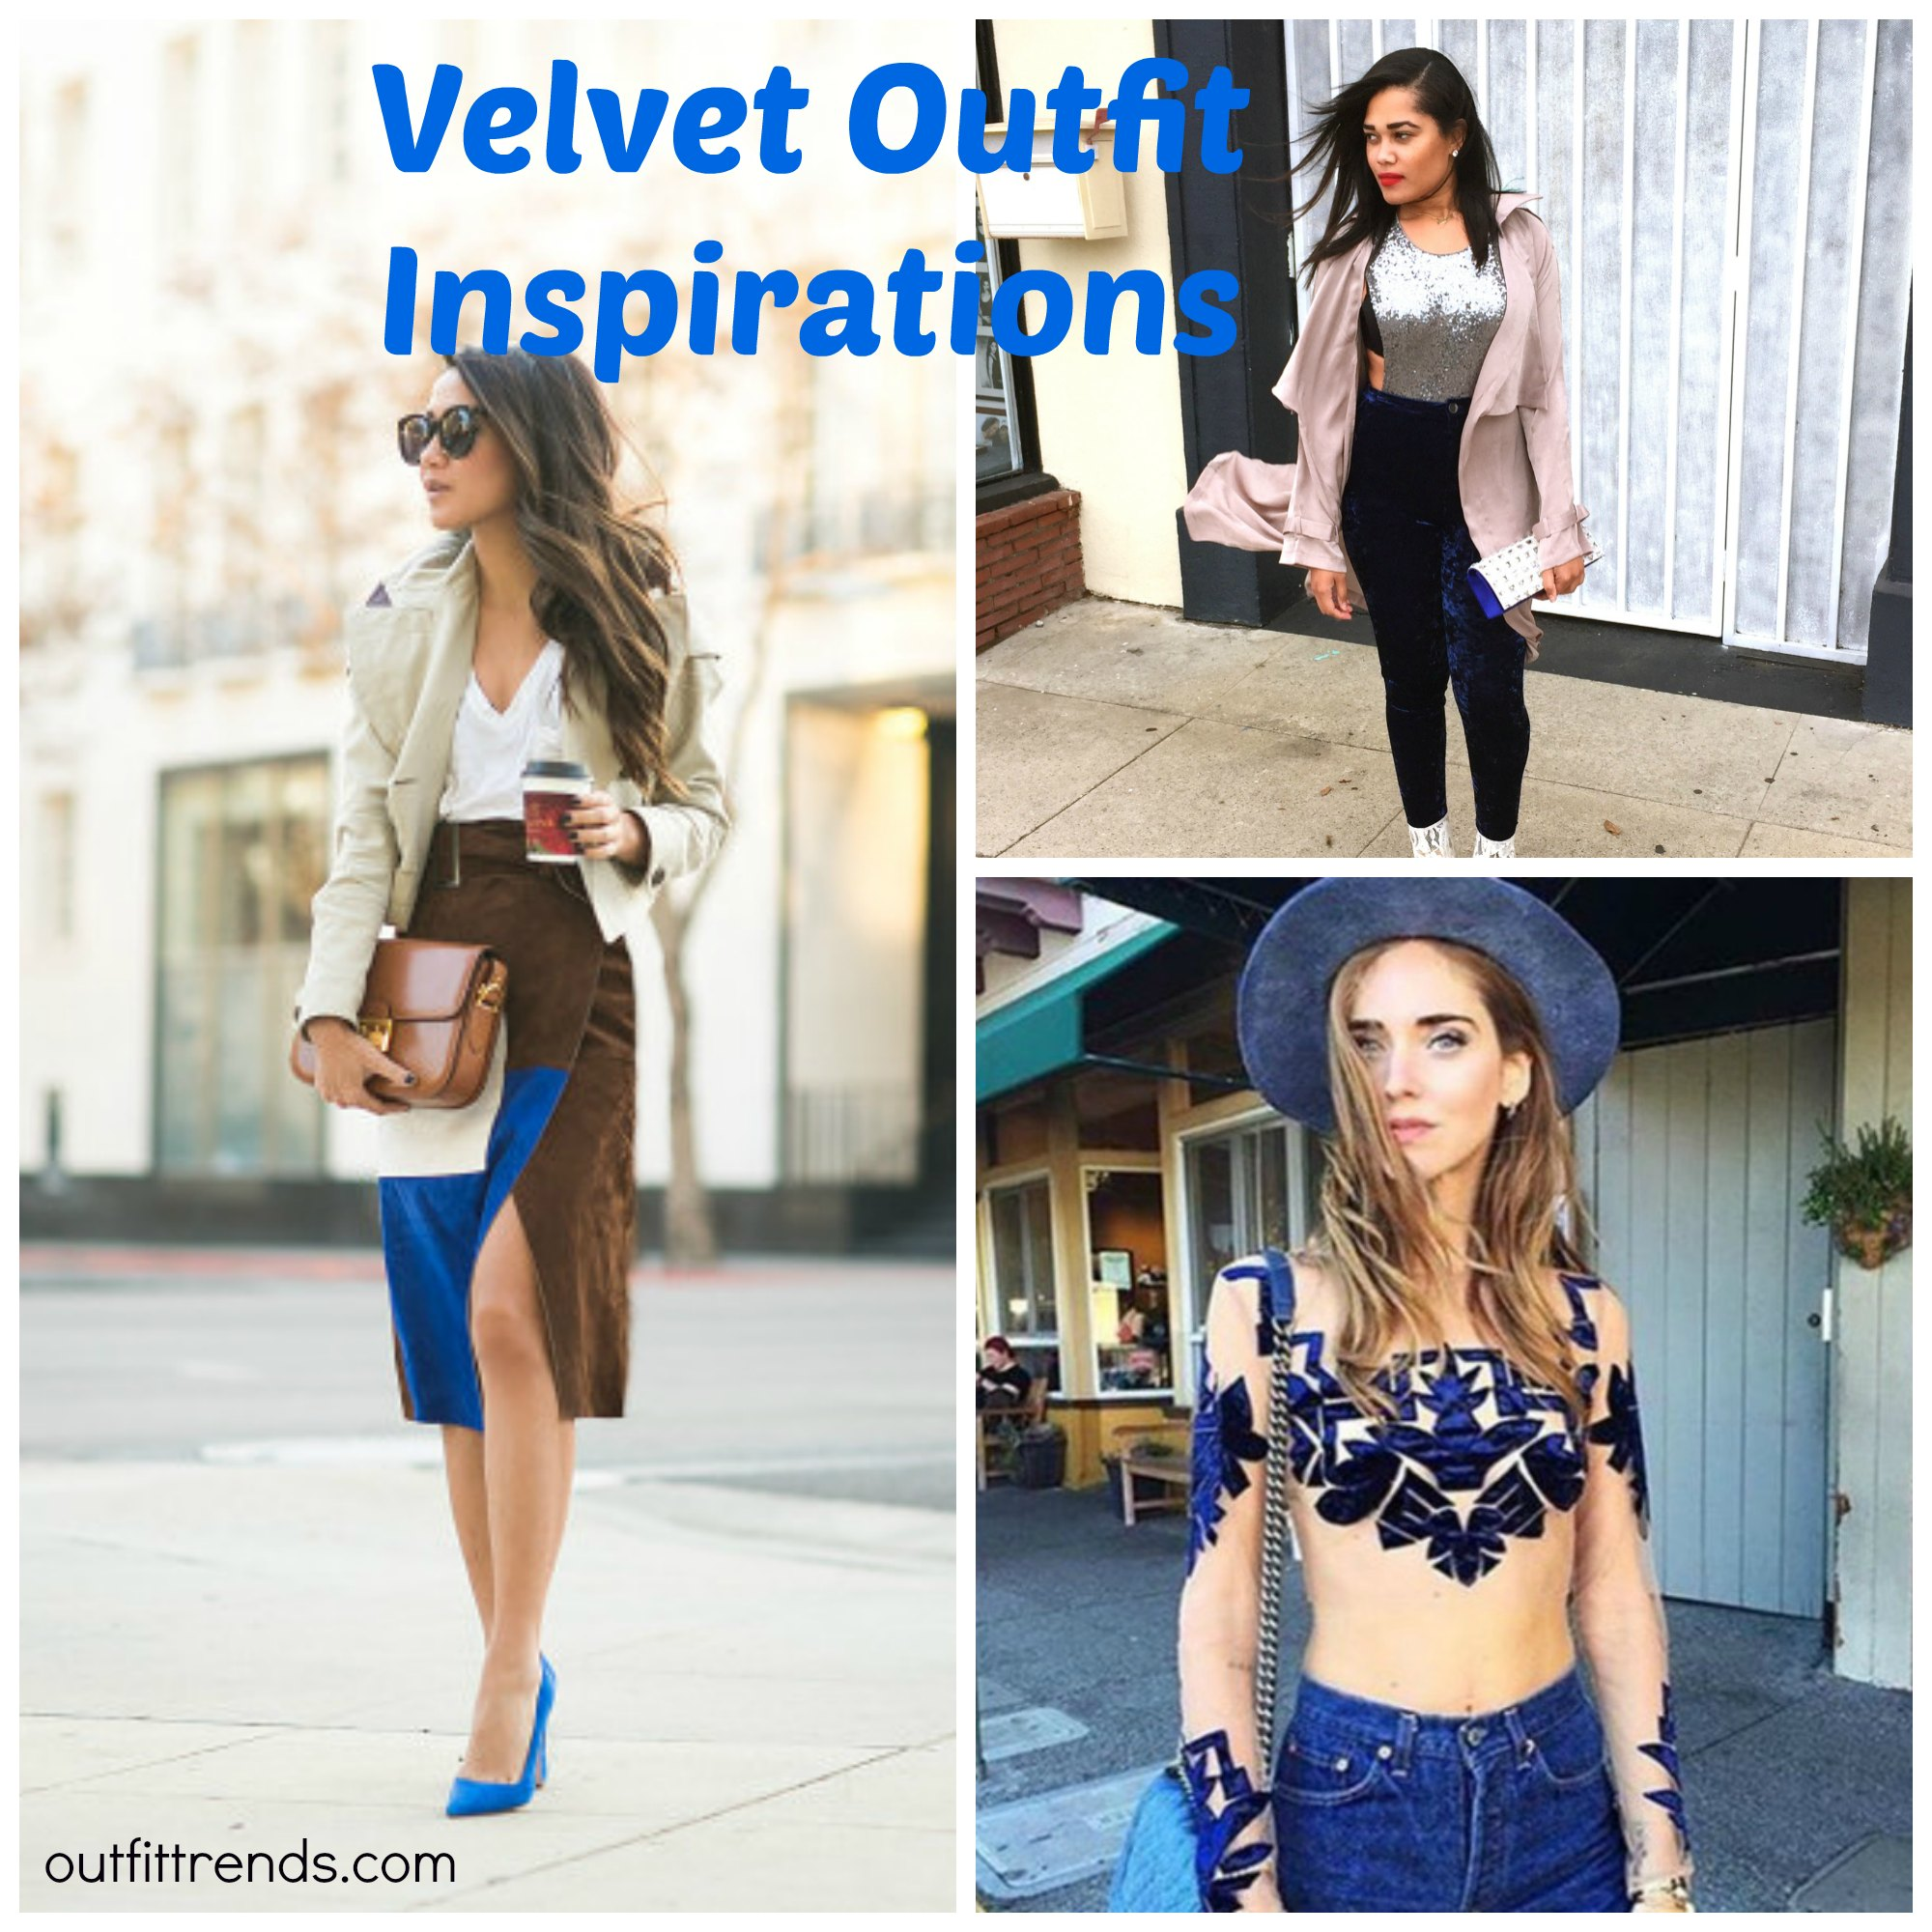 Velvet Outfit ideas-20 Ways to Wear Velvet Dresses Stylishly